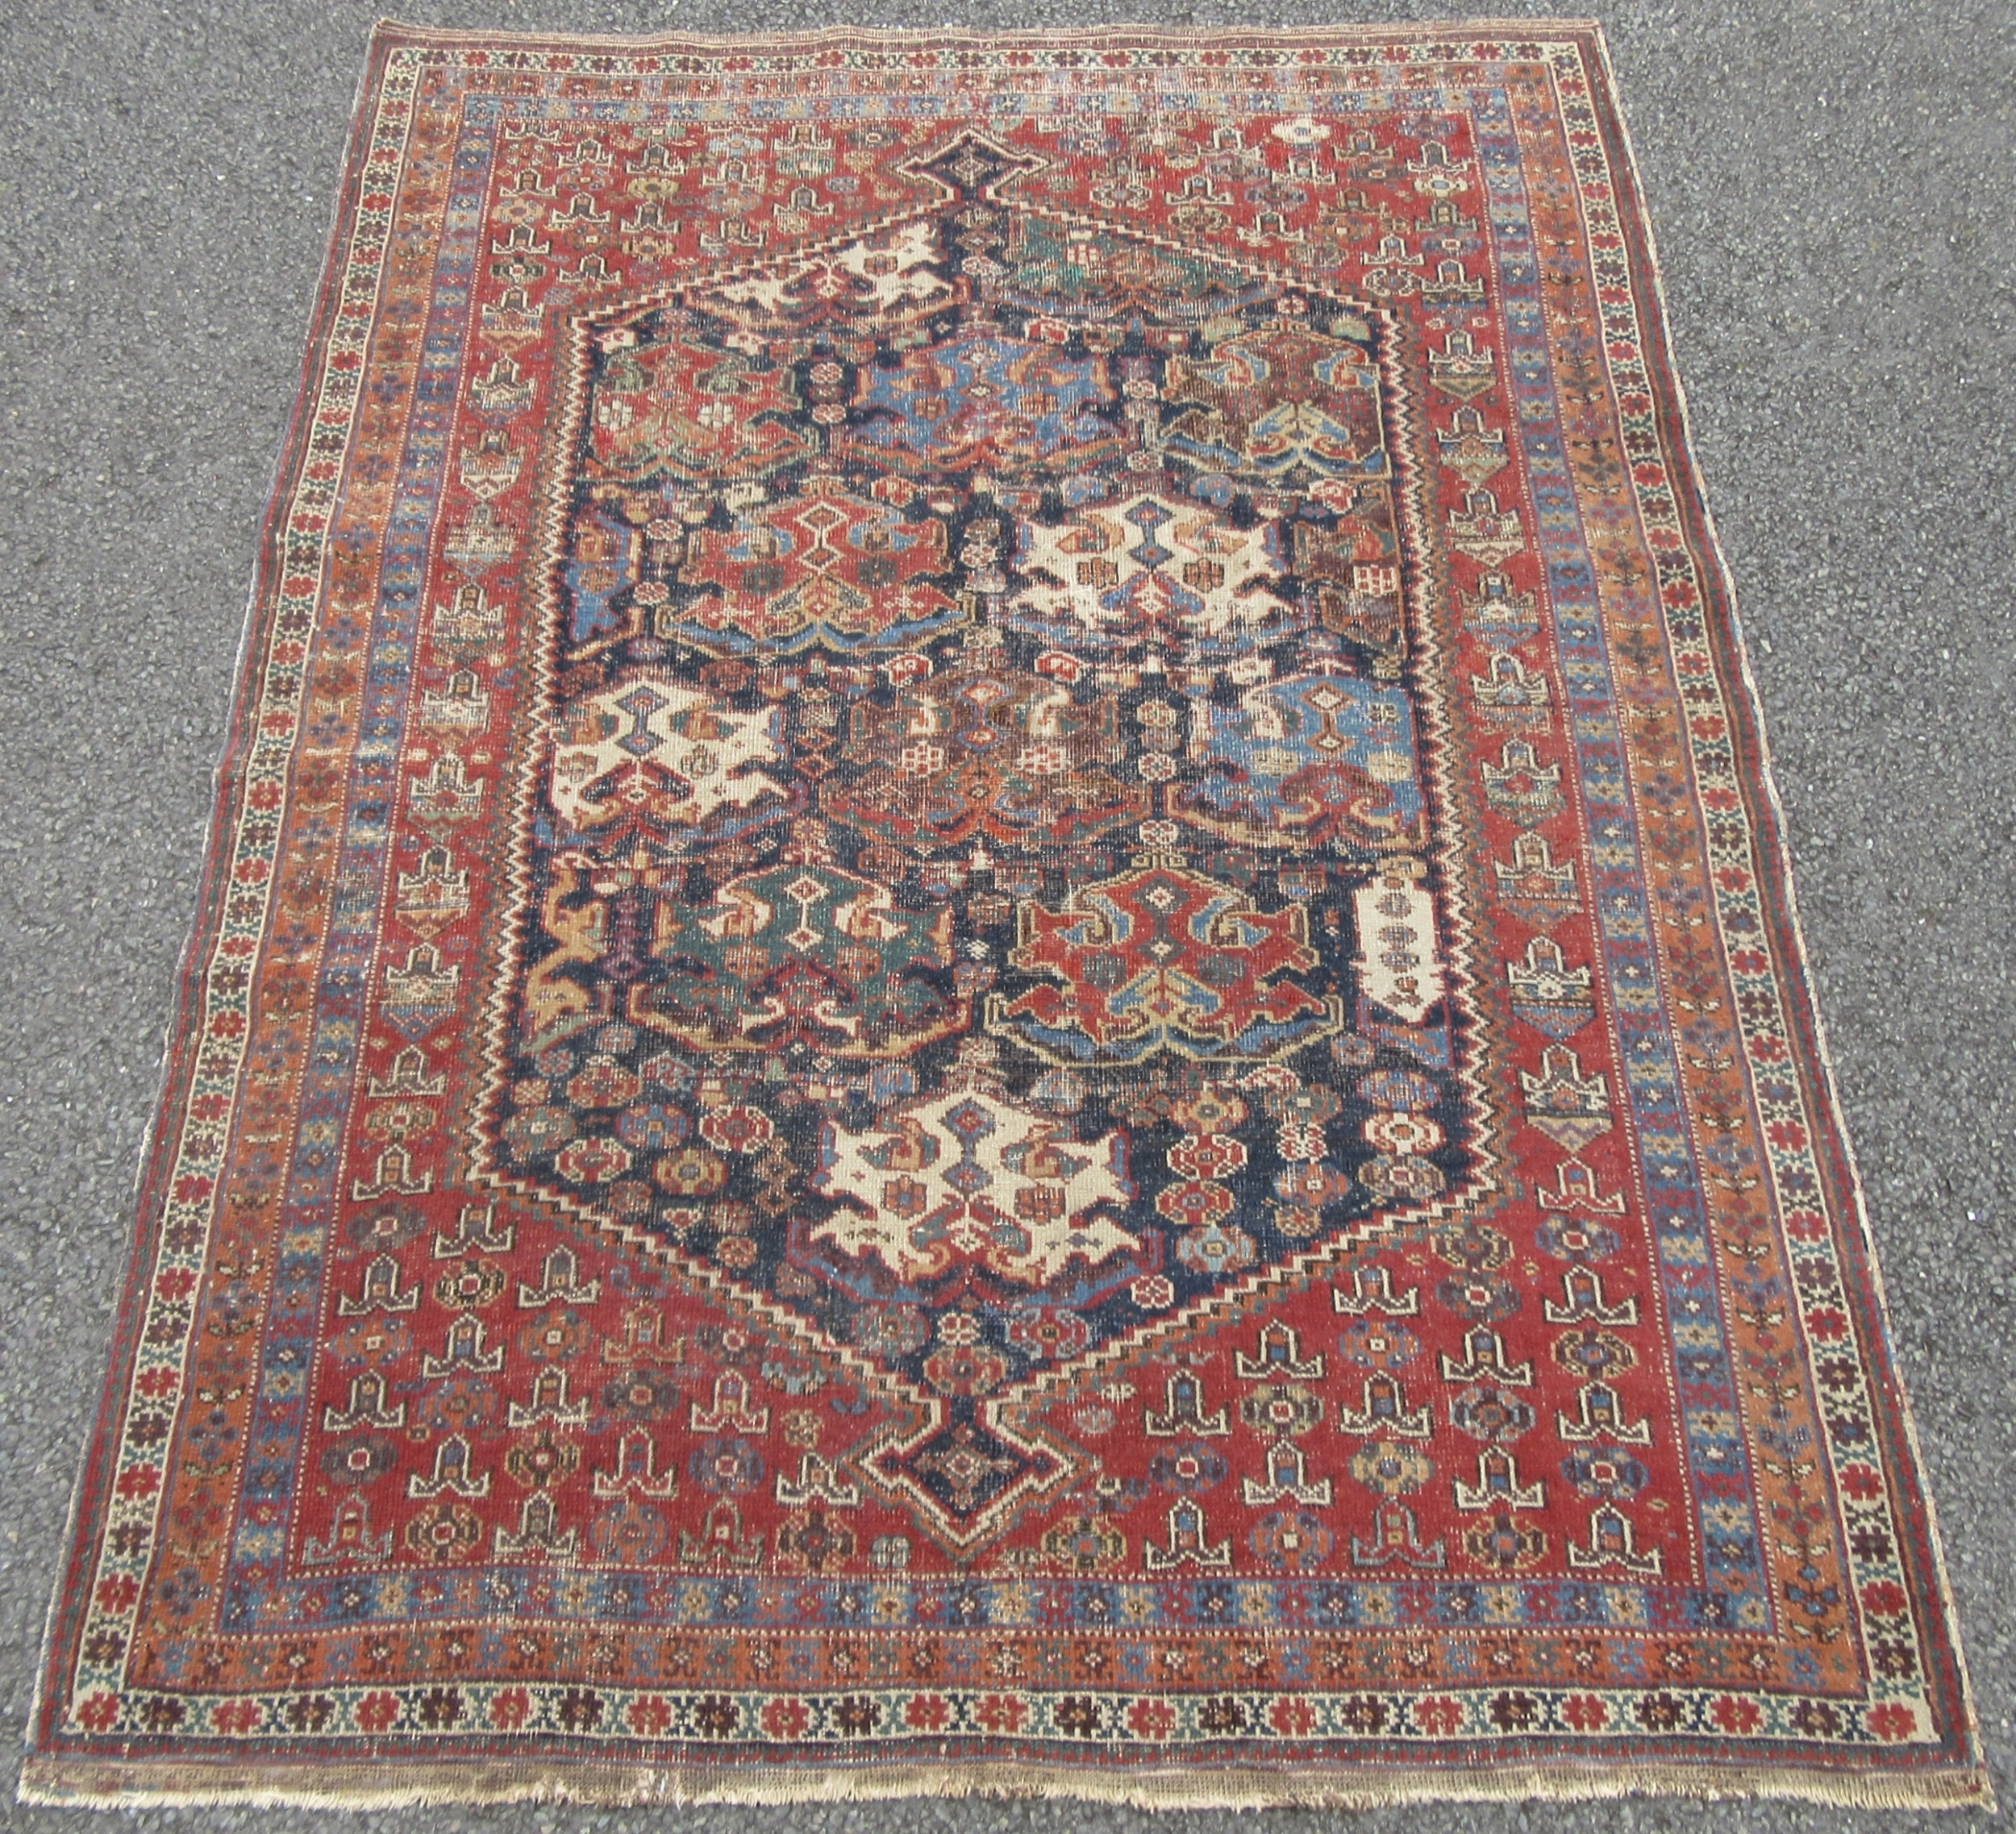 unusual scarce pattern antique country house shabby chic persian afshar rug late 19th century